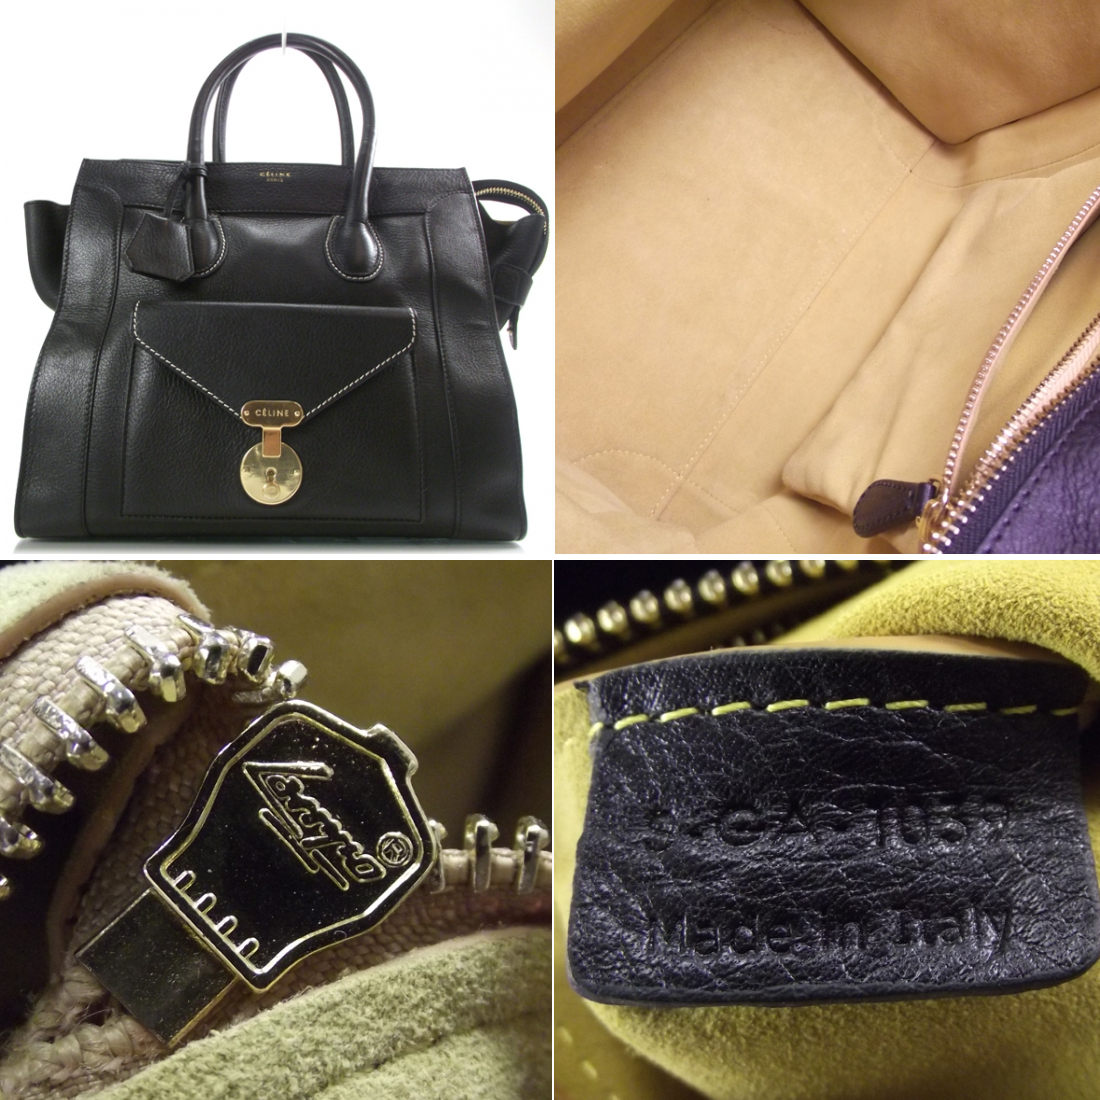 celine shoulder luggage tote price - Authentication Quiz: Chanel Earrings, Louis Vuitton Speedy, Hermes ...